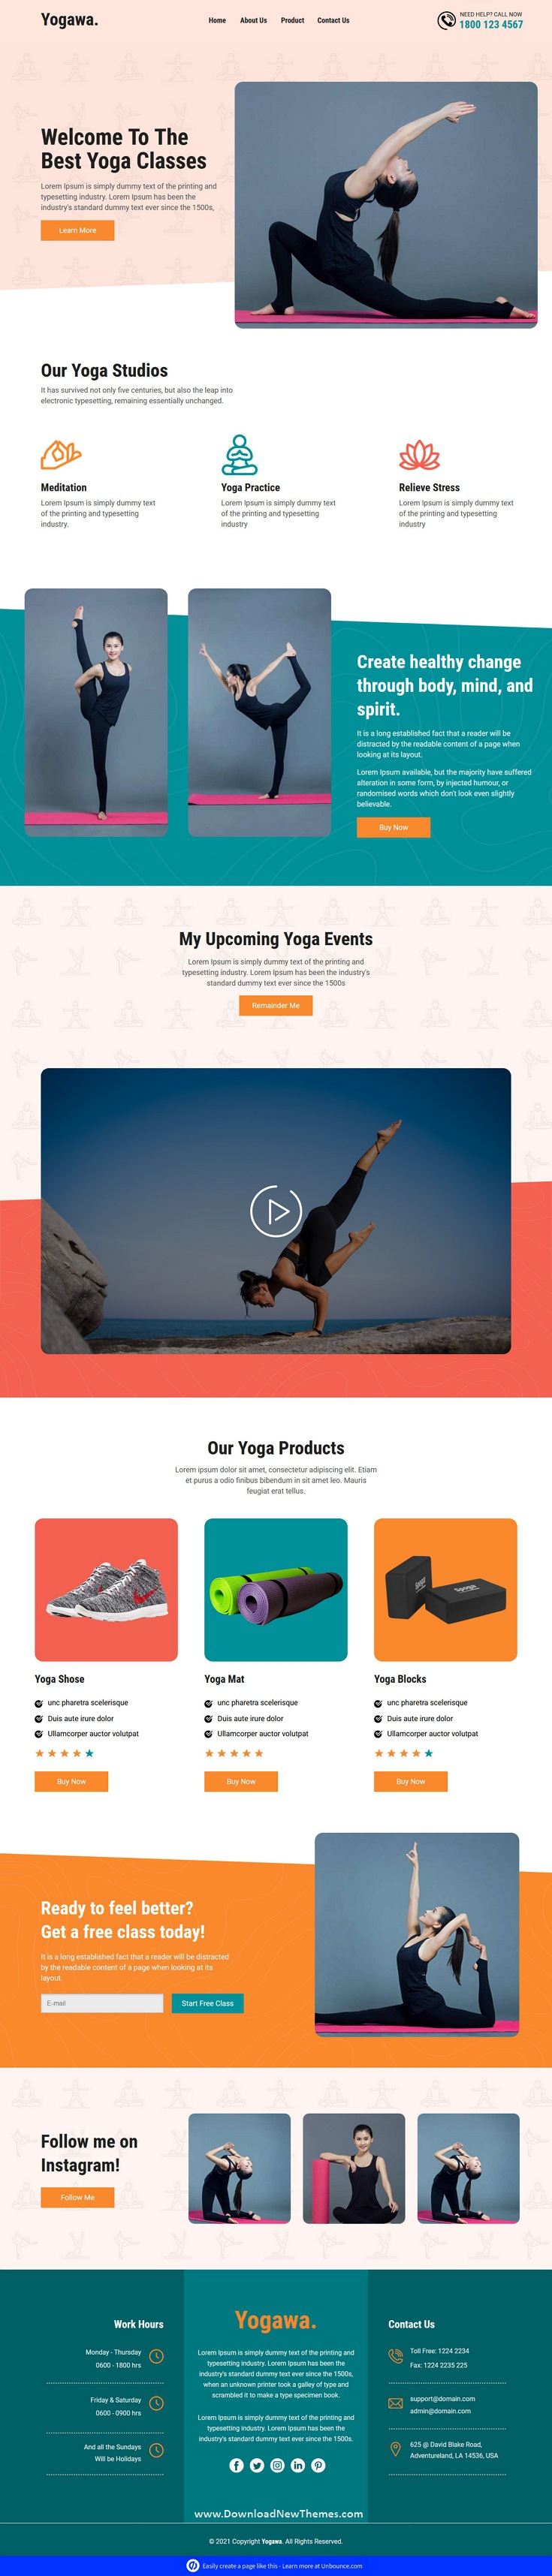 Yoga Unbounce Landing Page Template